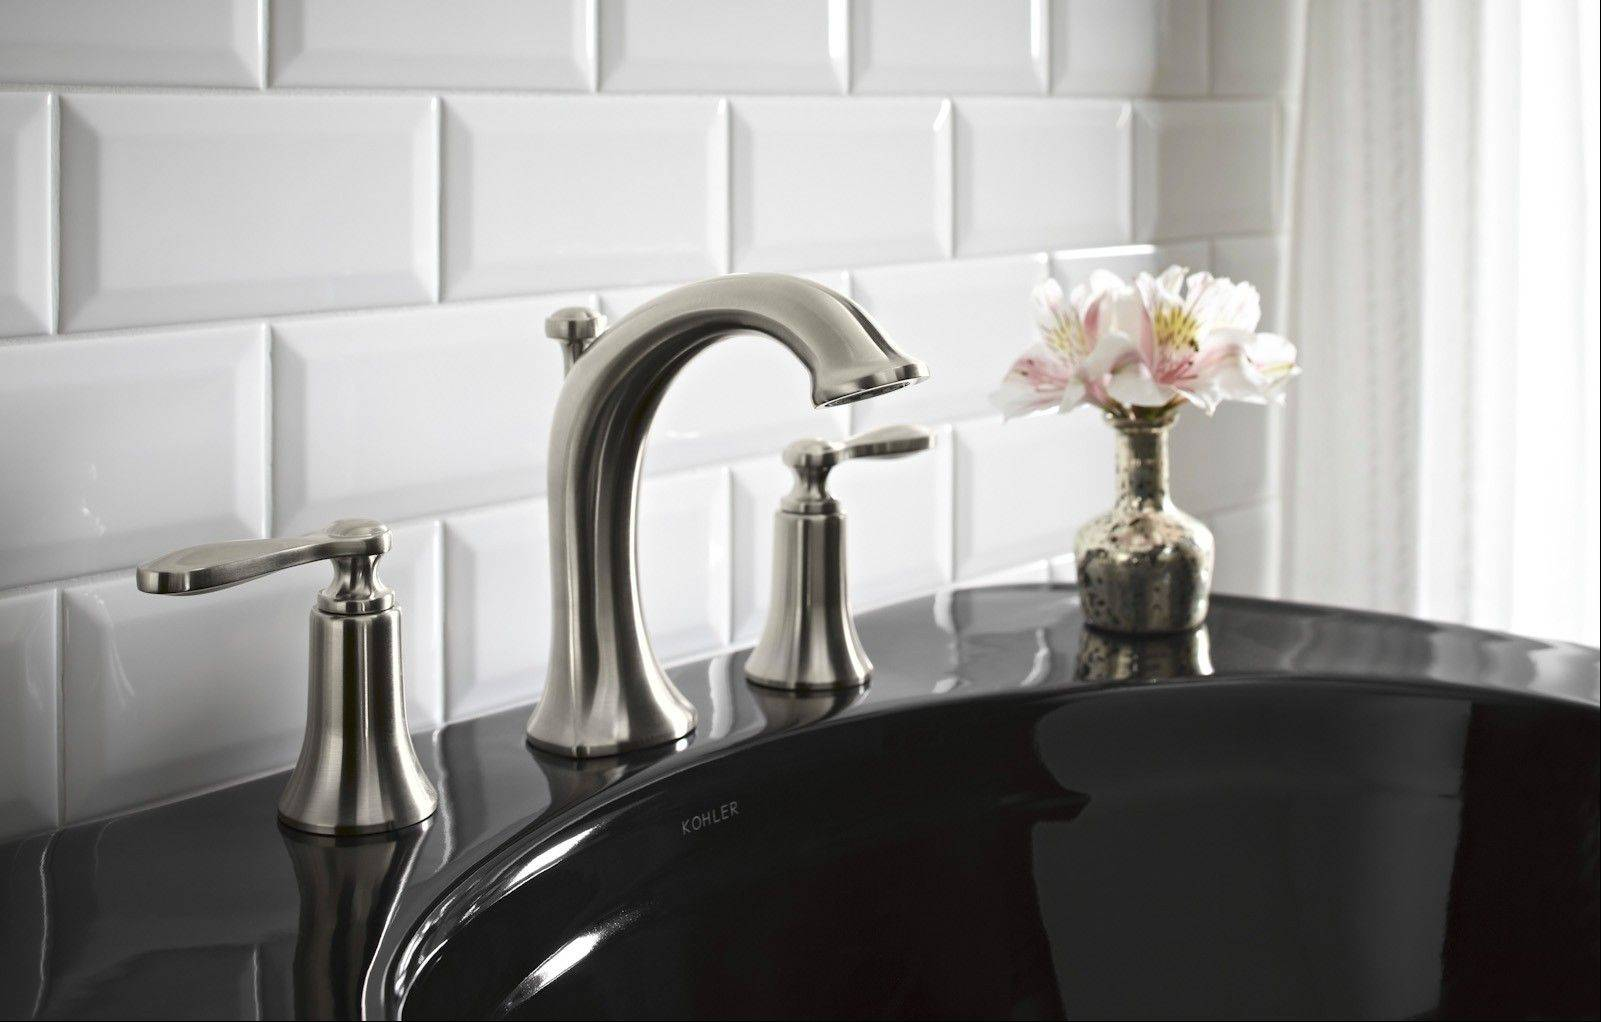 Today�s faucet finishes are very durable, but you should always clean with care. Use nonabrasive mild cleaners, rinse thoroughly with a soft damp cloth, then blot dry.